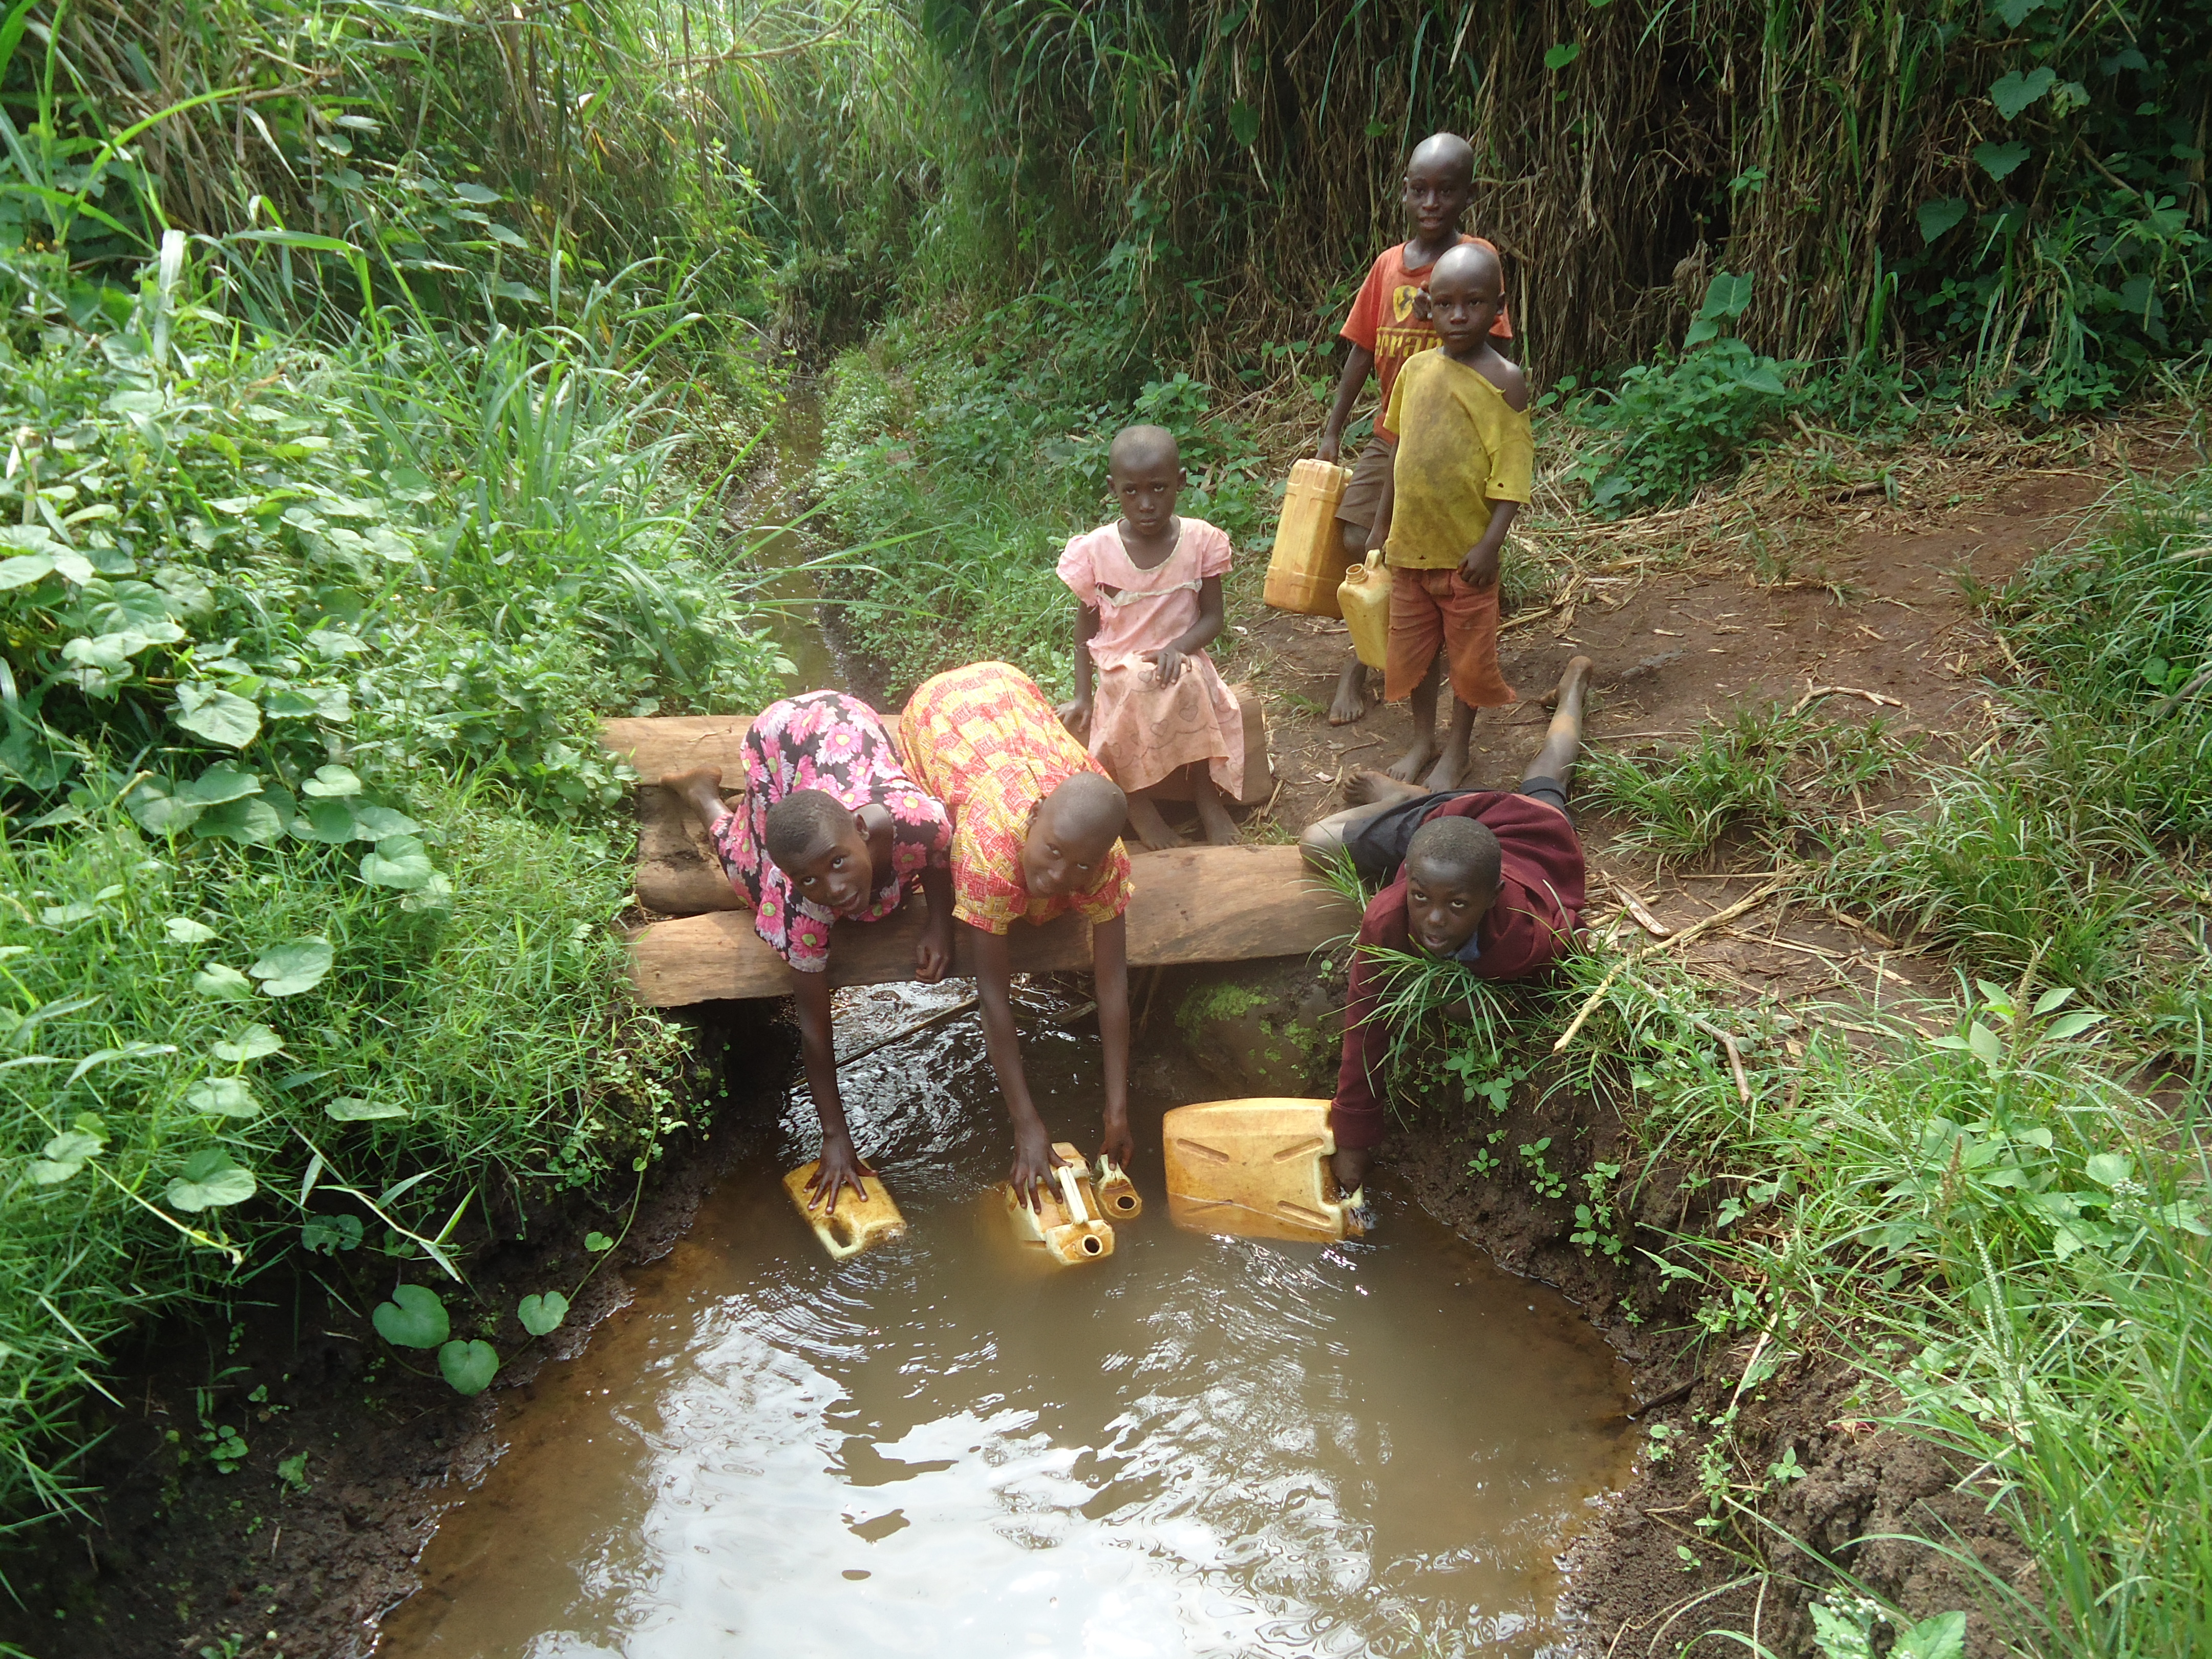 Village children using buckets to collect drinking water from a stream